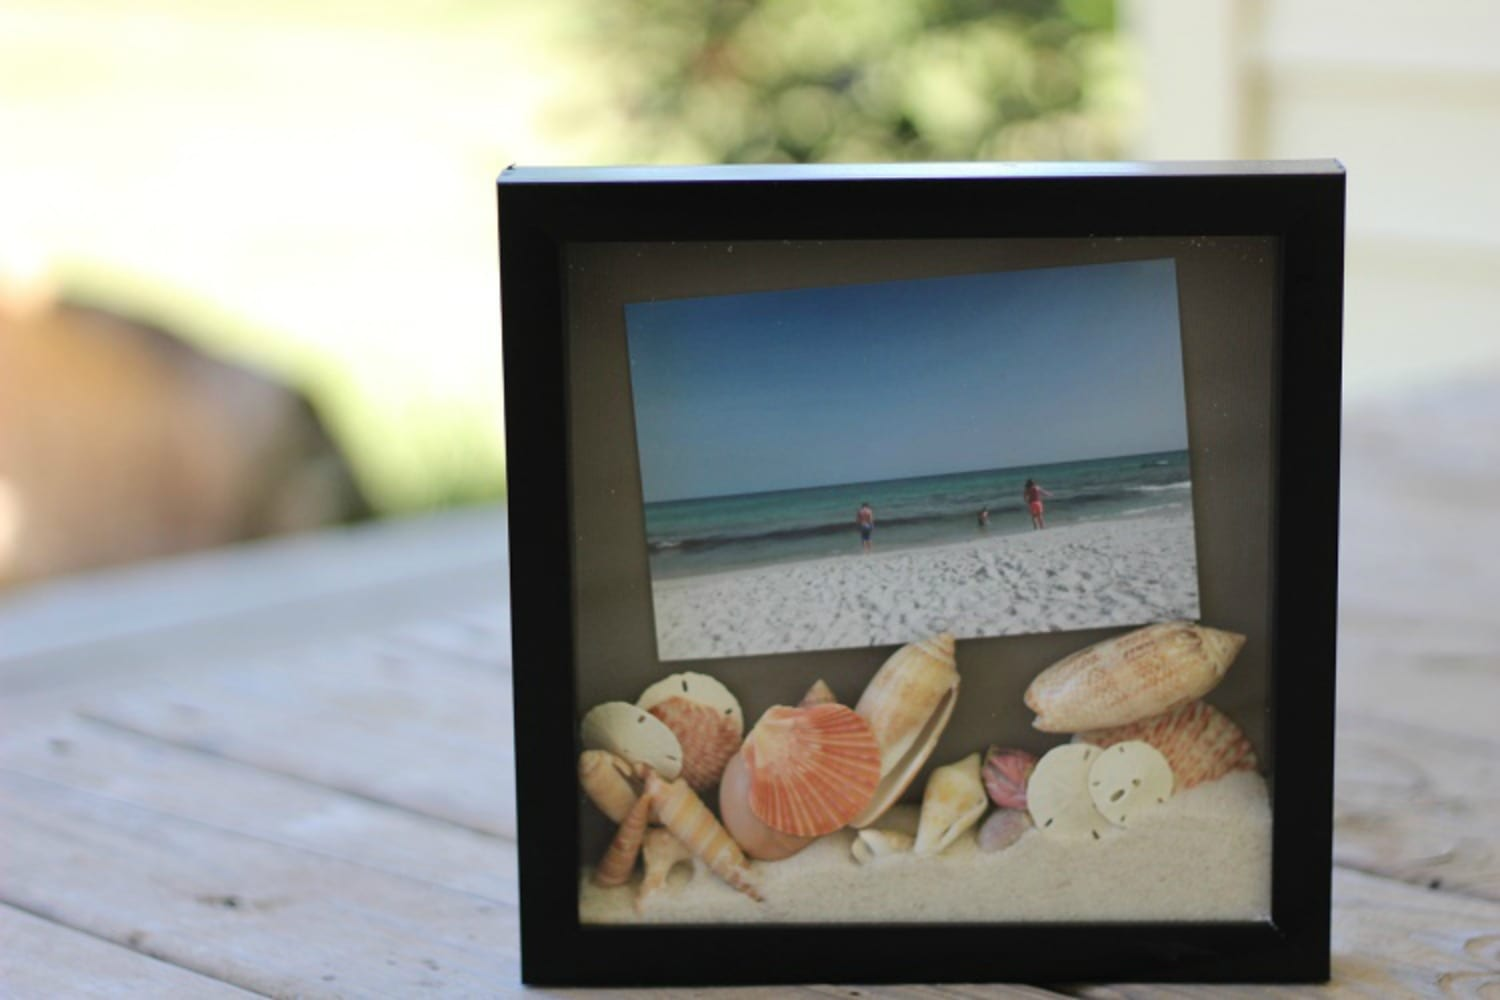 10 Sand Amp Seashell Crafts Hobbies On A Budget